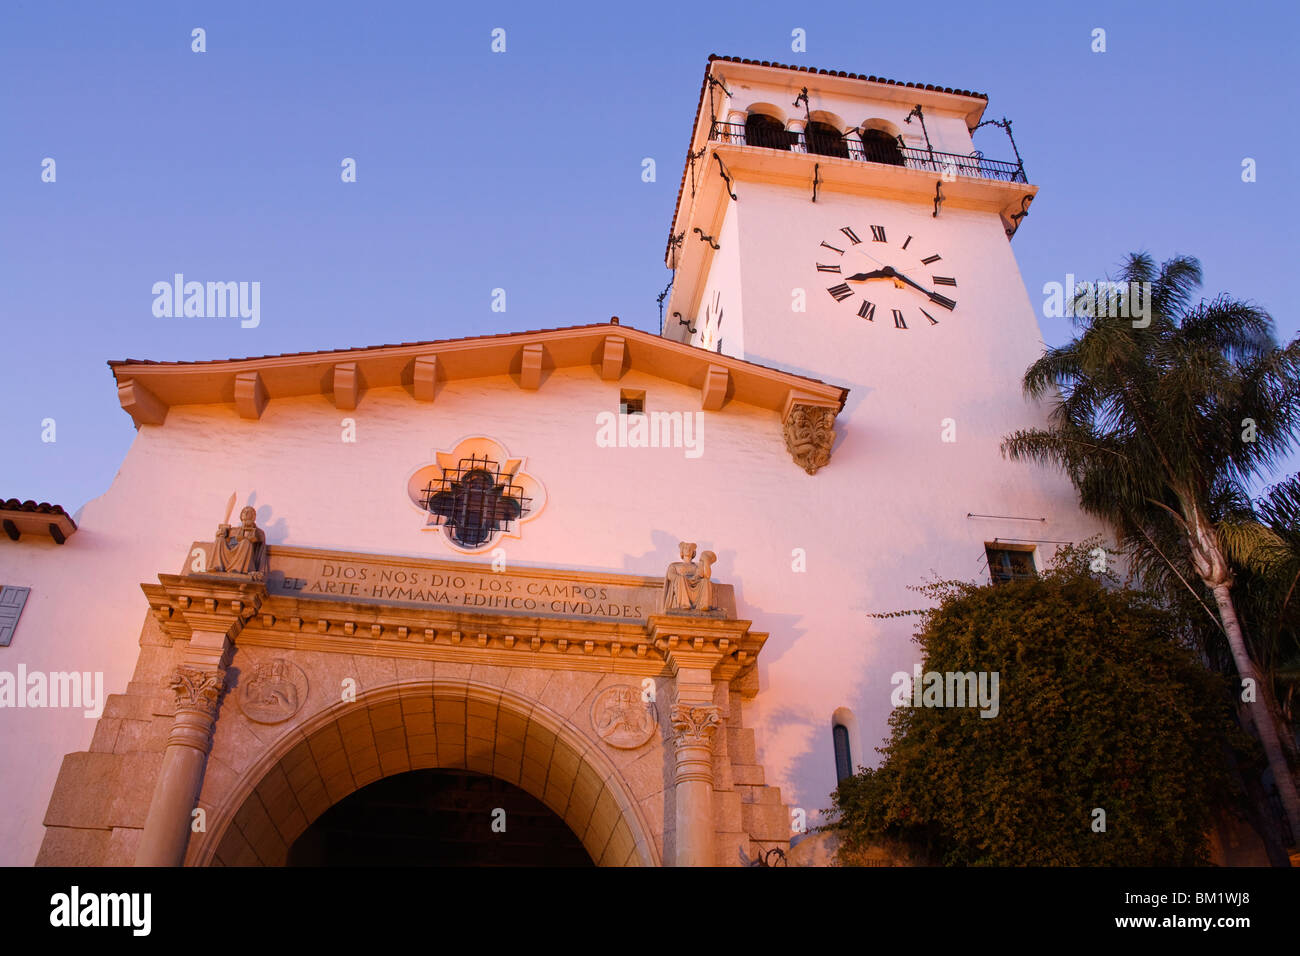 Santa Barbara County Courthouse, Santa Barbara, California, United States of America, North America - Stock Image